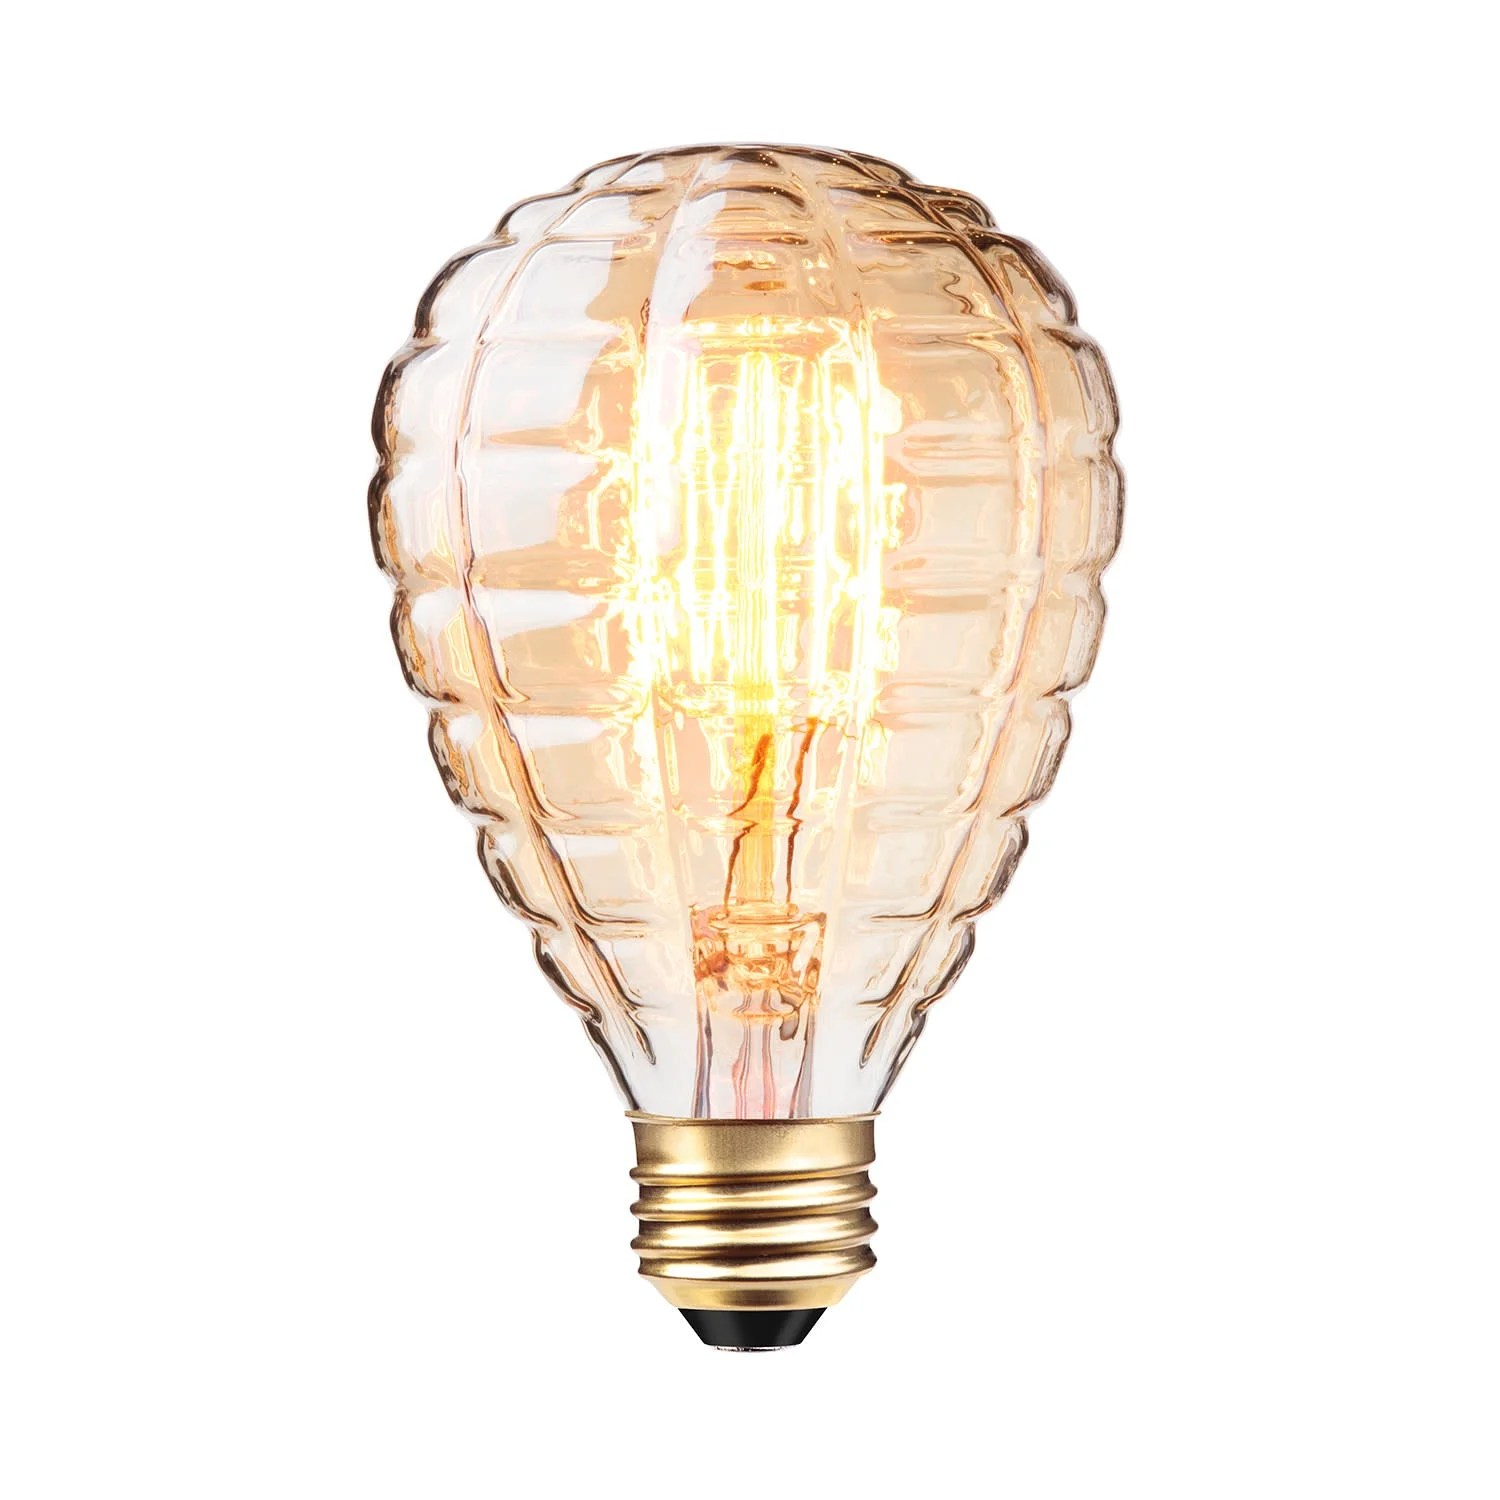 40 Watt In Lumen Globe Electric 84635 Single Granada 40 Watt G25 Medium E26 140 Lumen Vintage Incandescent Bulb Amber N A